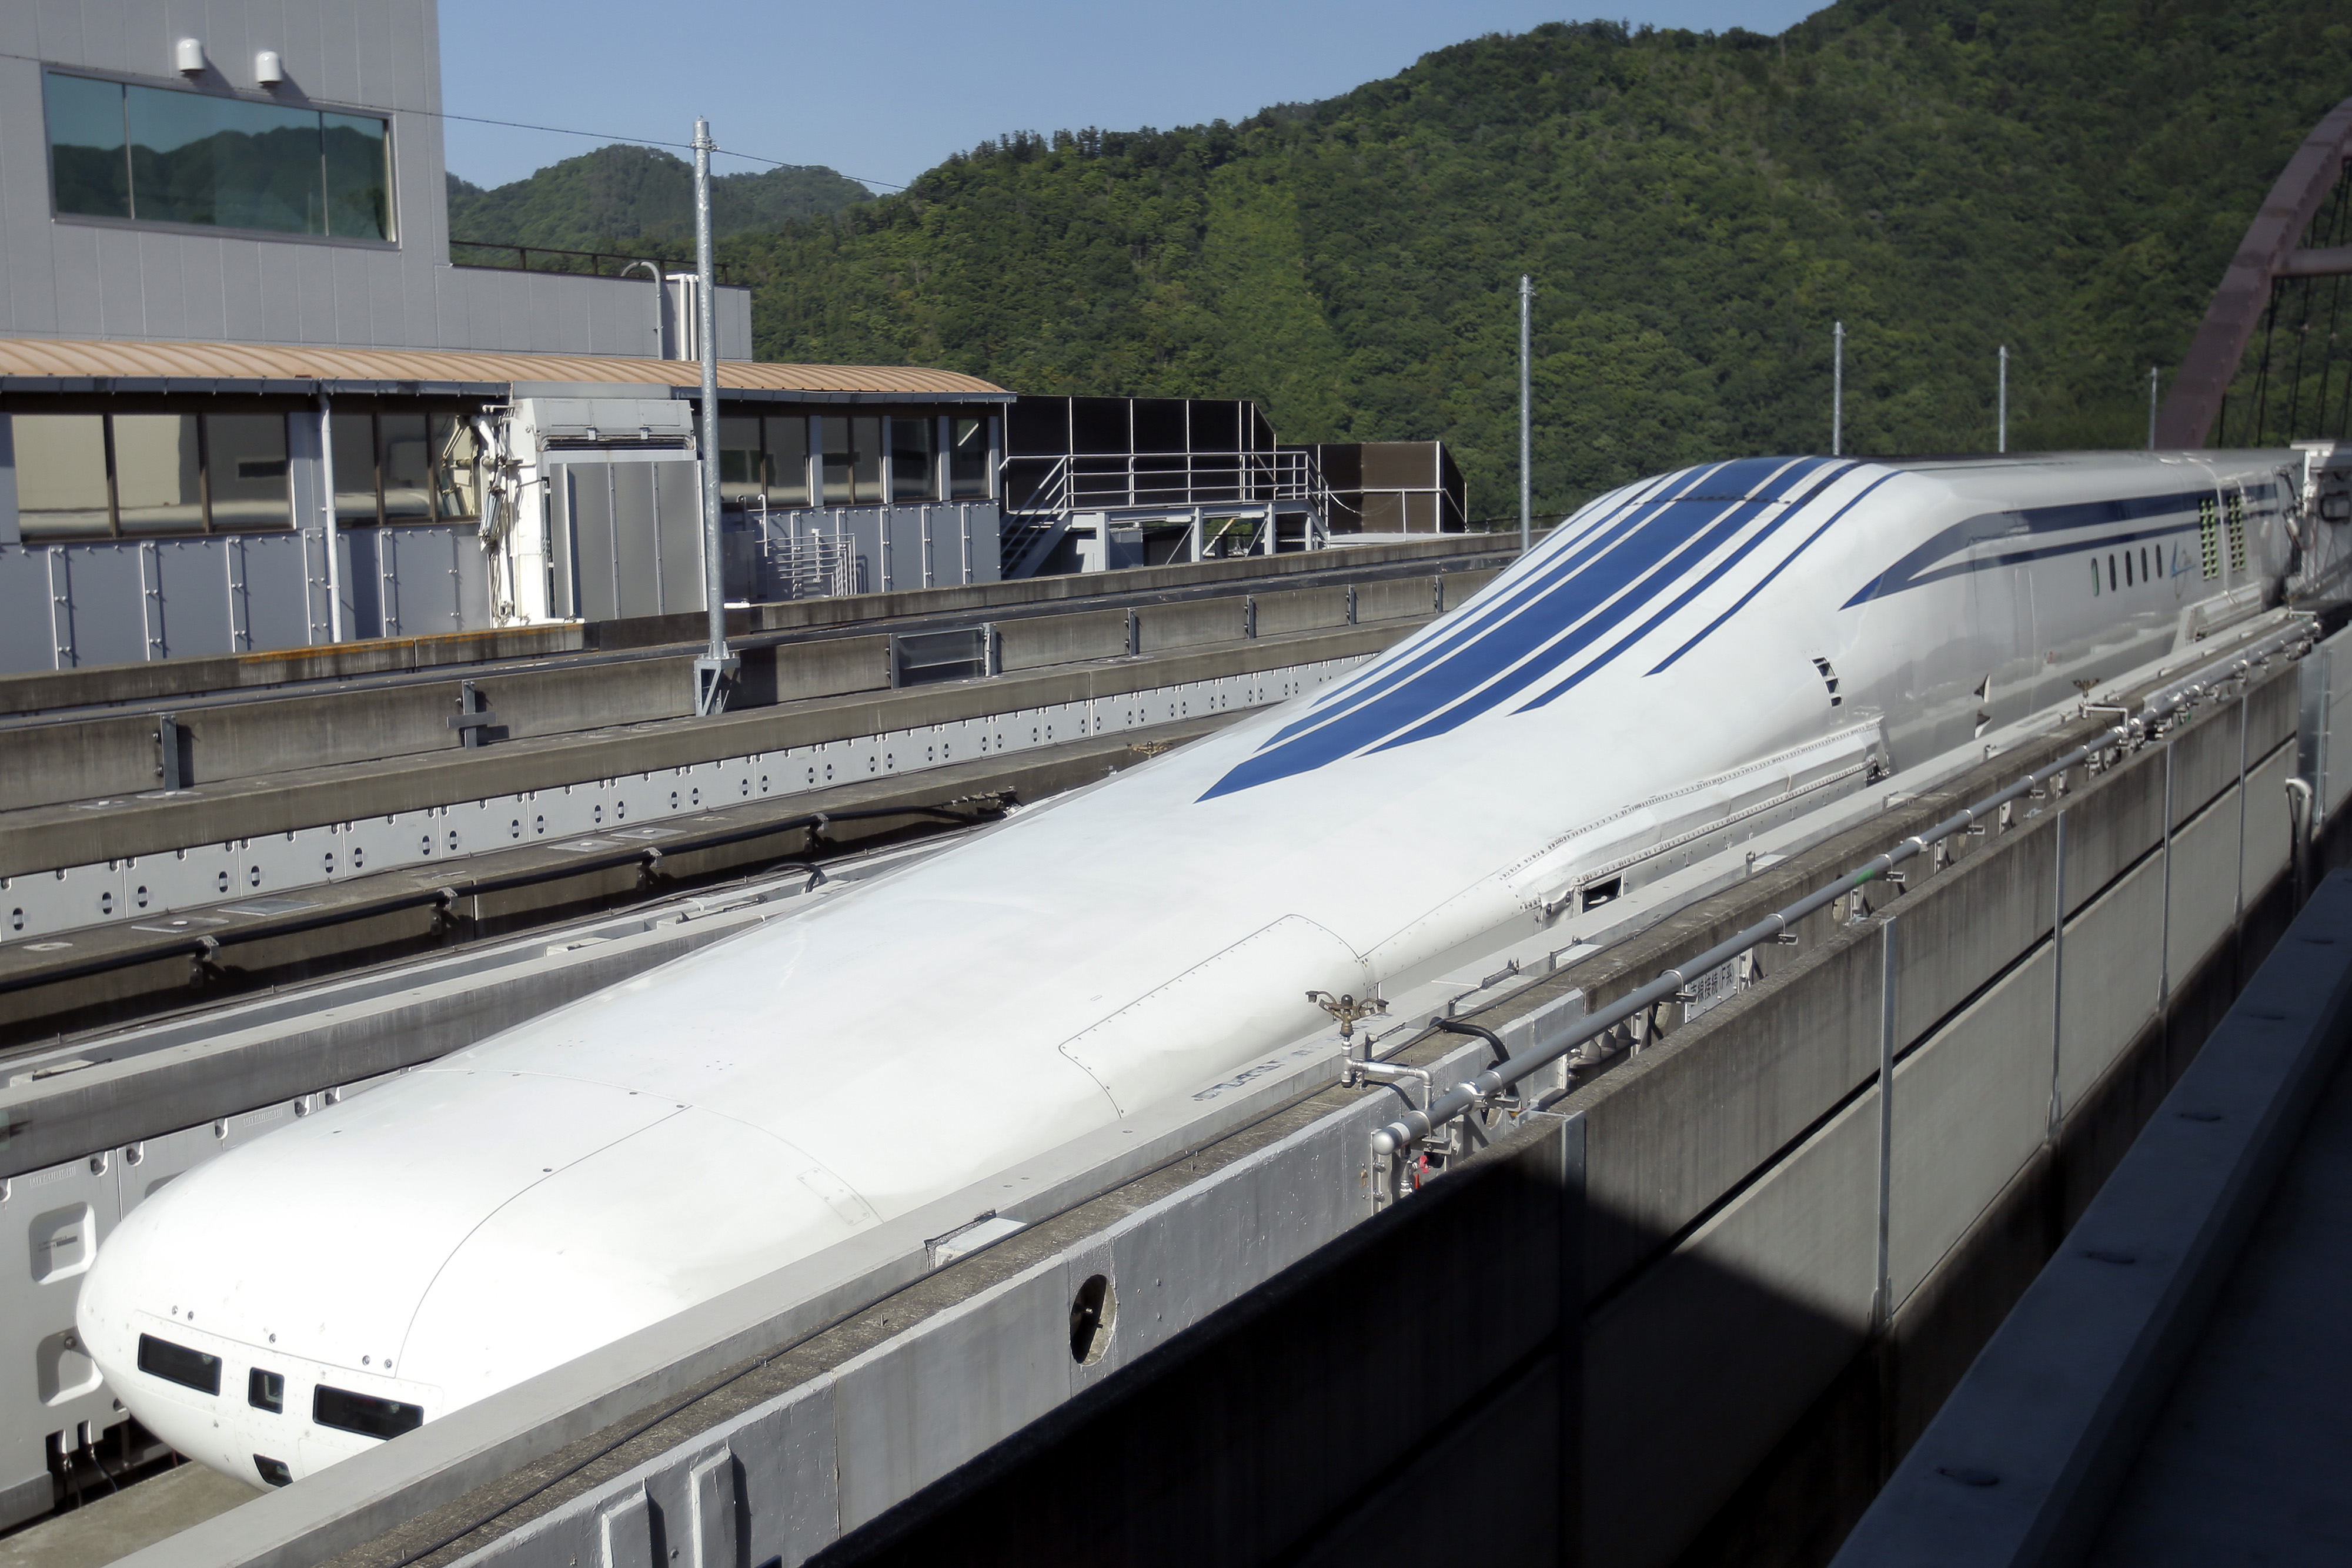 An L0 series magnetic levitation (maglev) train, developed by Central Japan Railway Co. (JR Central), sits on a track ahead of a trial run at the Yamanashi Maglev Test Track site in Tsuru, Yamanashi Prefecture, Japan, on Thursday, June 4, 2015. JR Central hopes to introduce maglev train simultaneously in Japan and U.S., Honorary Chairman Yoshiyuki Kasai said after riding the Maglev train with Maryland Governor Lawrence Hogan outside Tokyo. Photographer: Kiyoshi Ota/Bloomberg